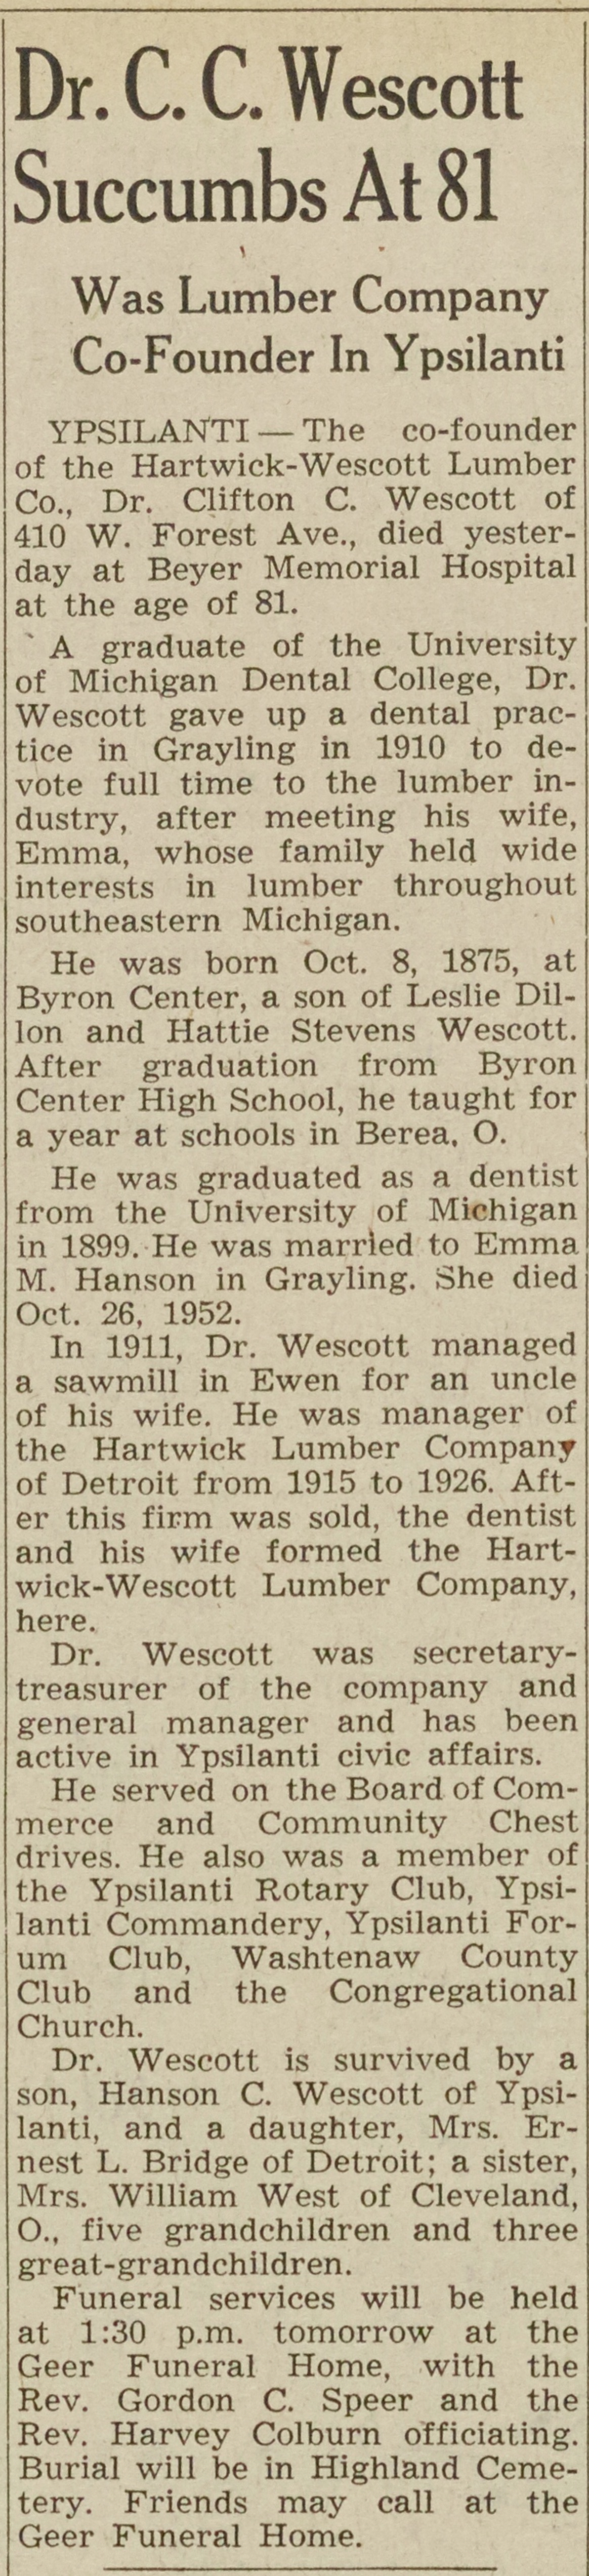 Dr. C. C. Wescott Succumbs At 81 image